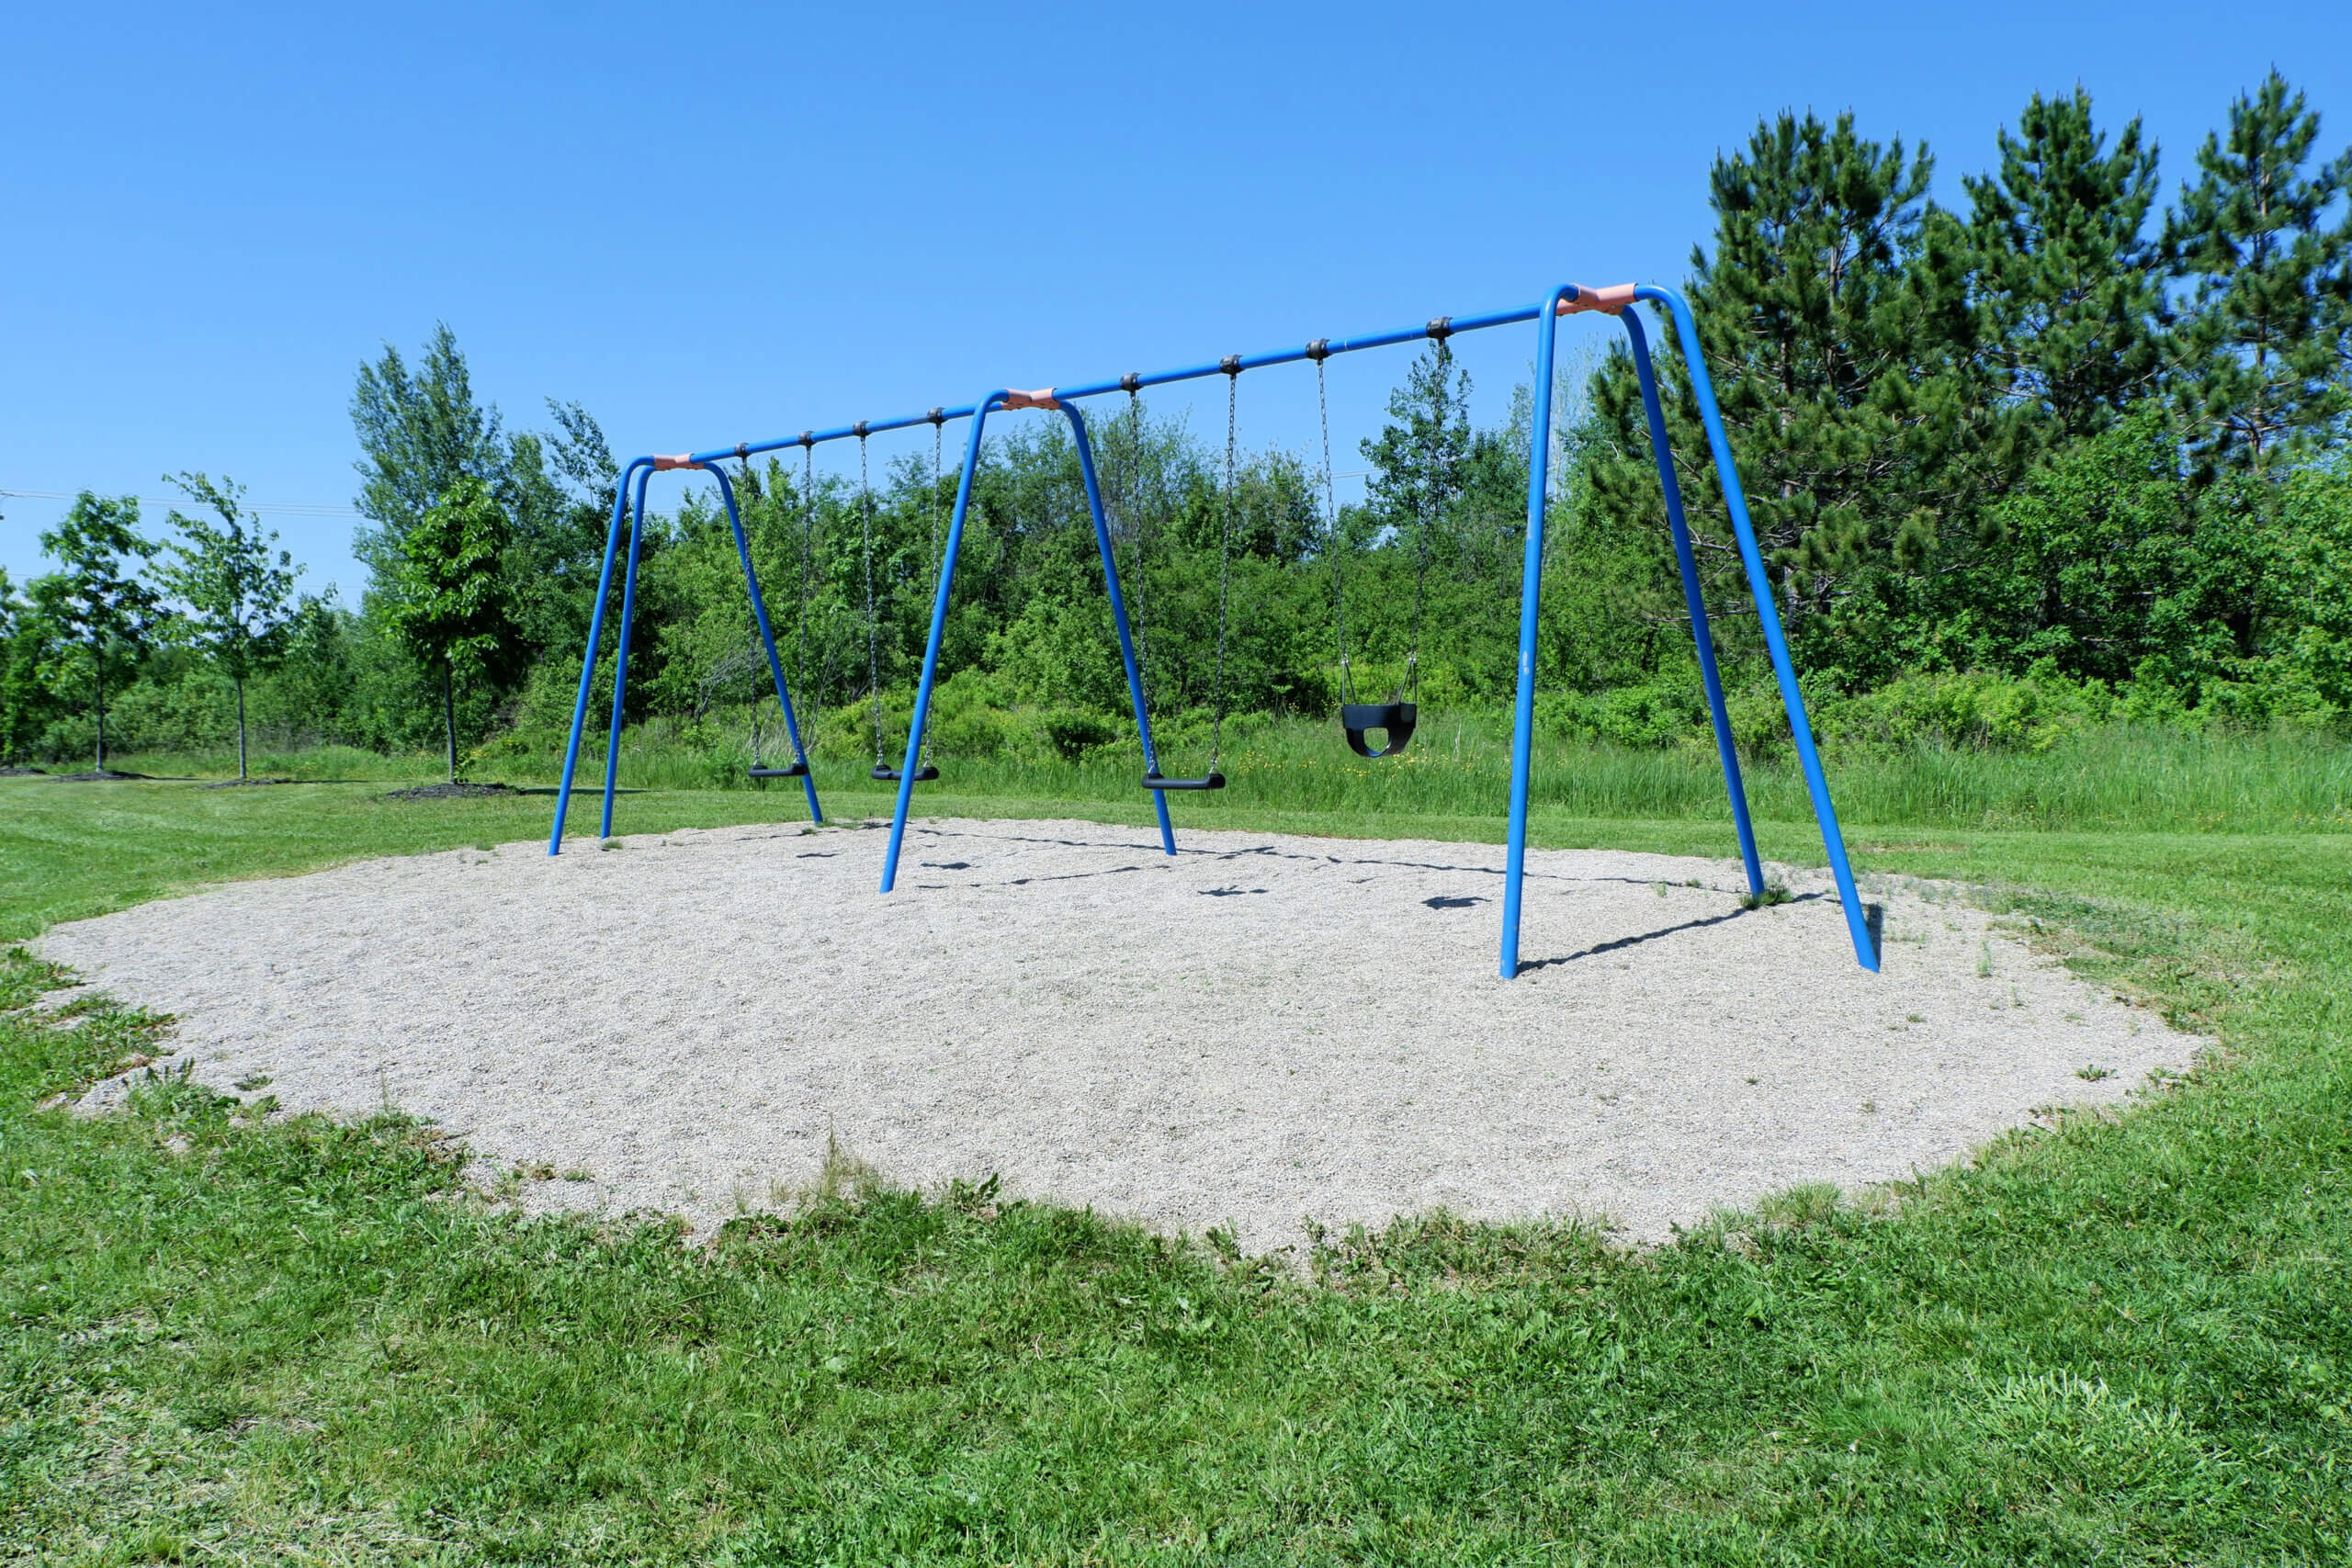 dieppe-hidden-pirate-ship-playground-amand-crescent-swings-infant